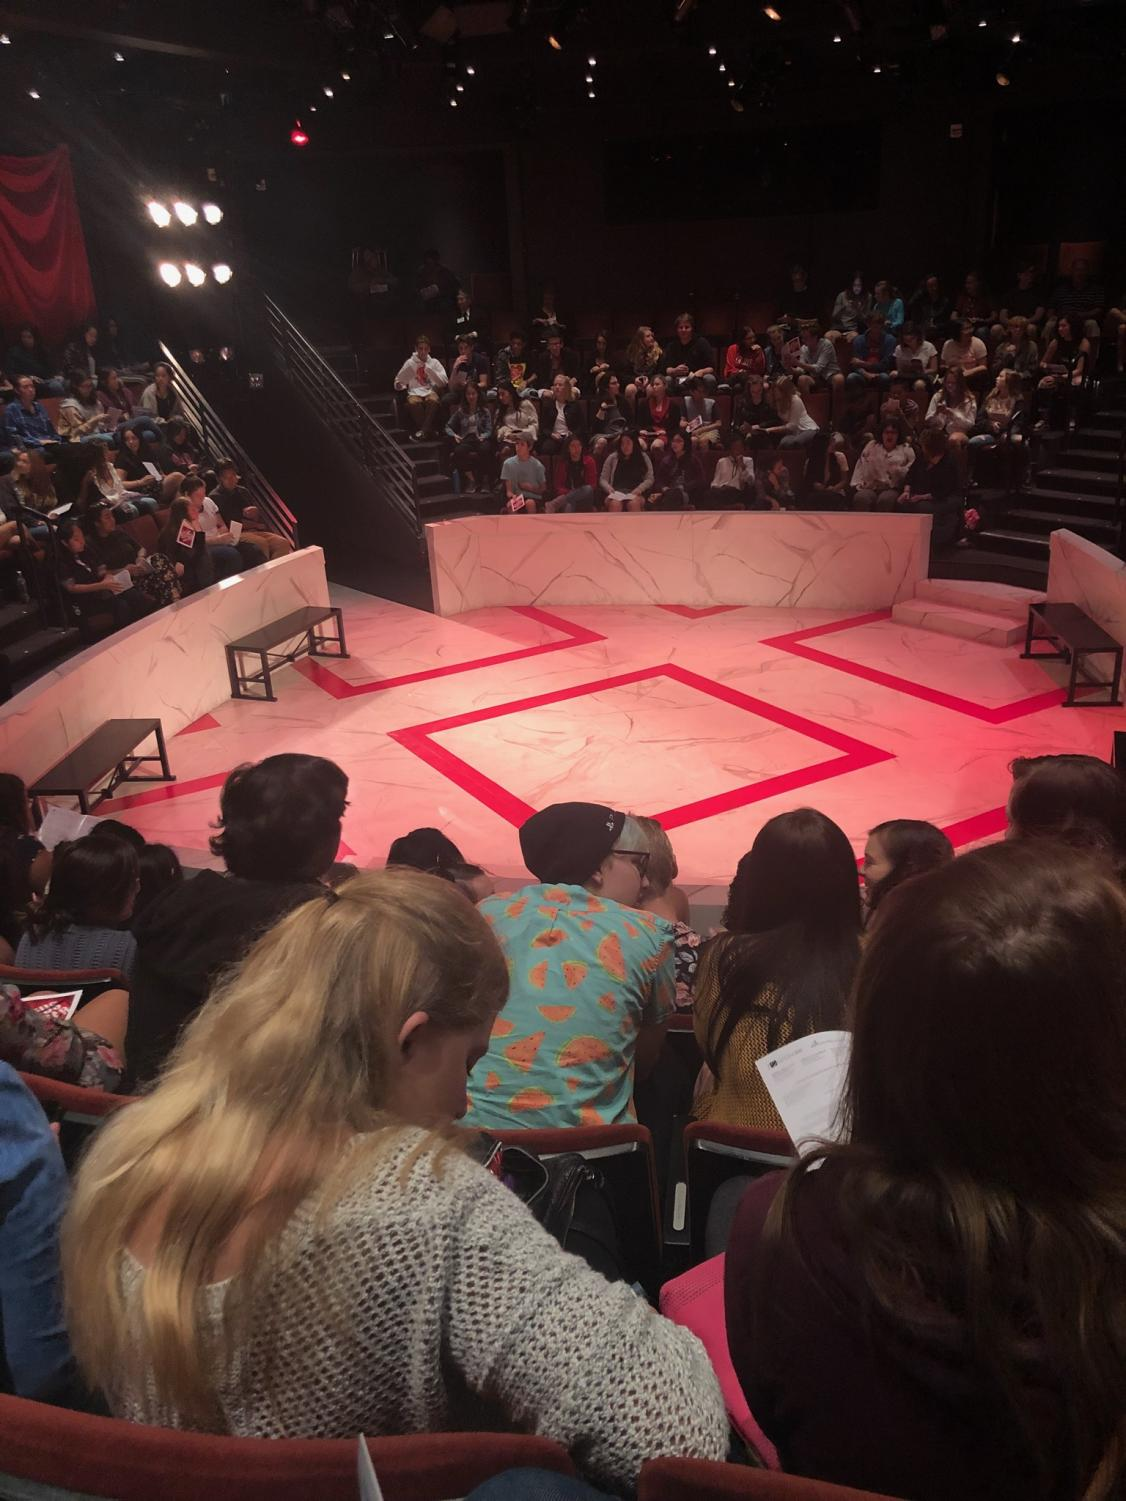 The round at the Old Globe where the show was performed. Note the marble painted floor and red design.